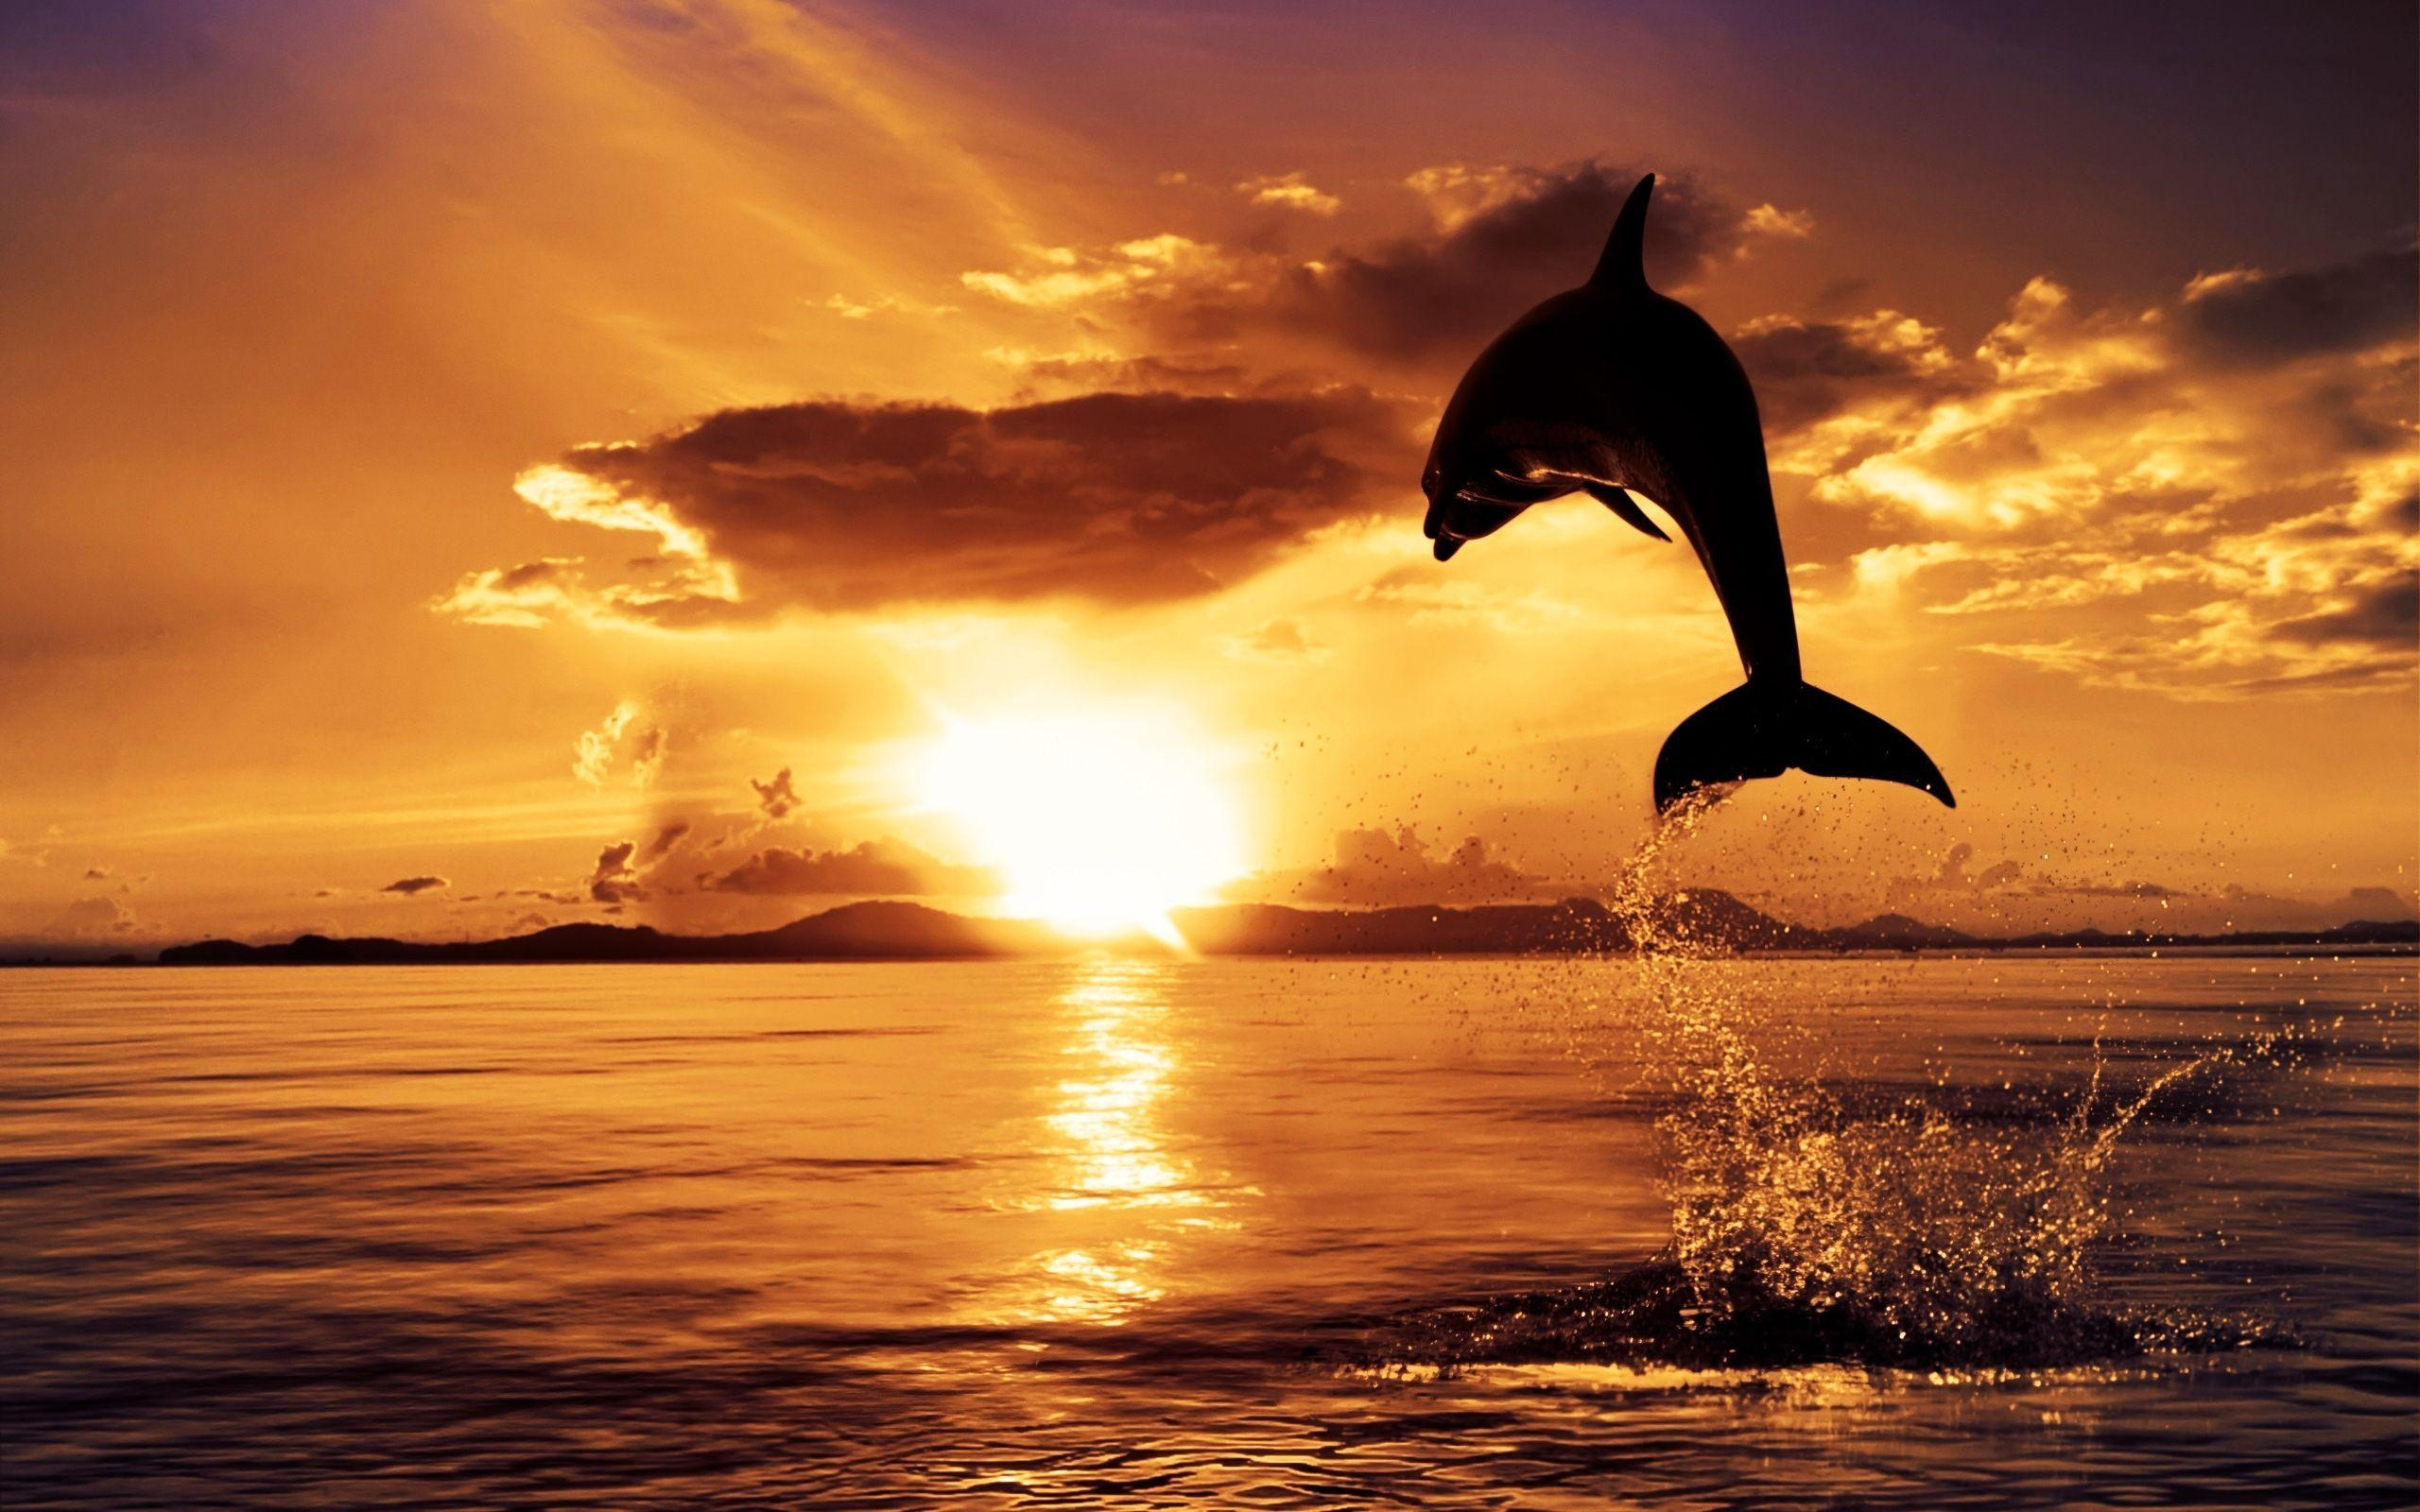 Dolphin jumping at sunset